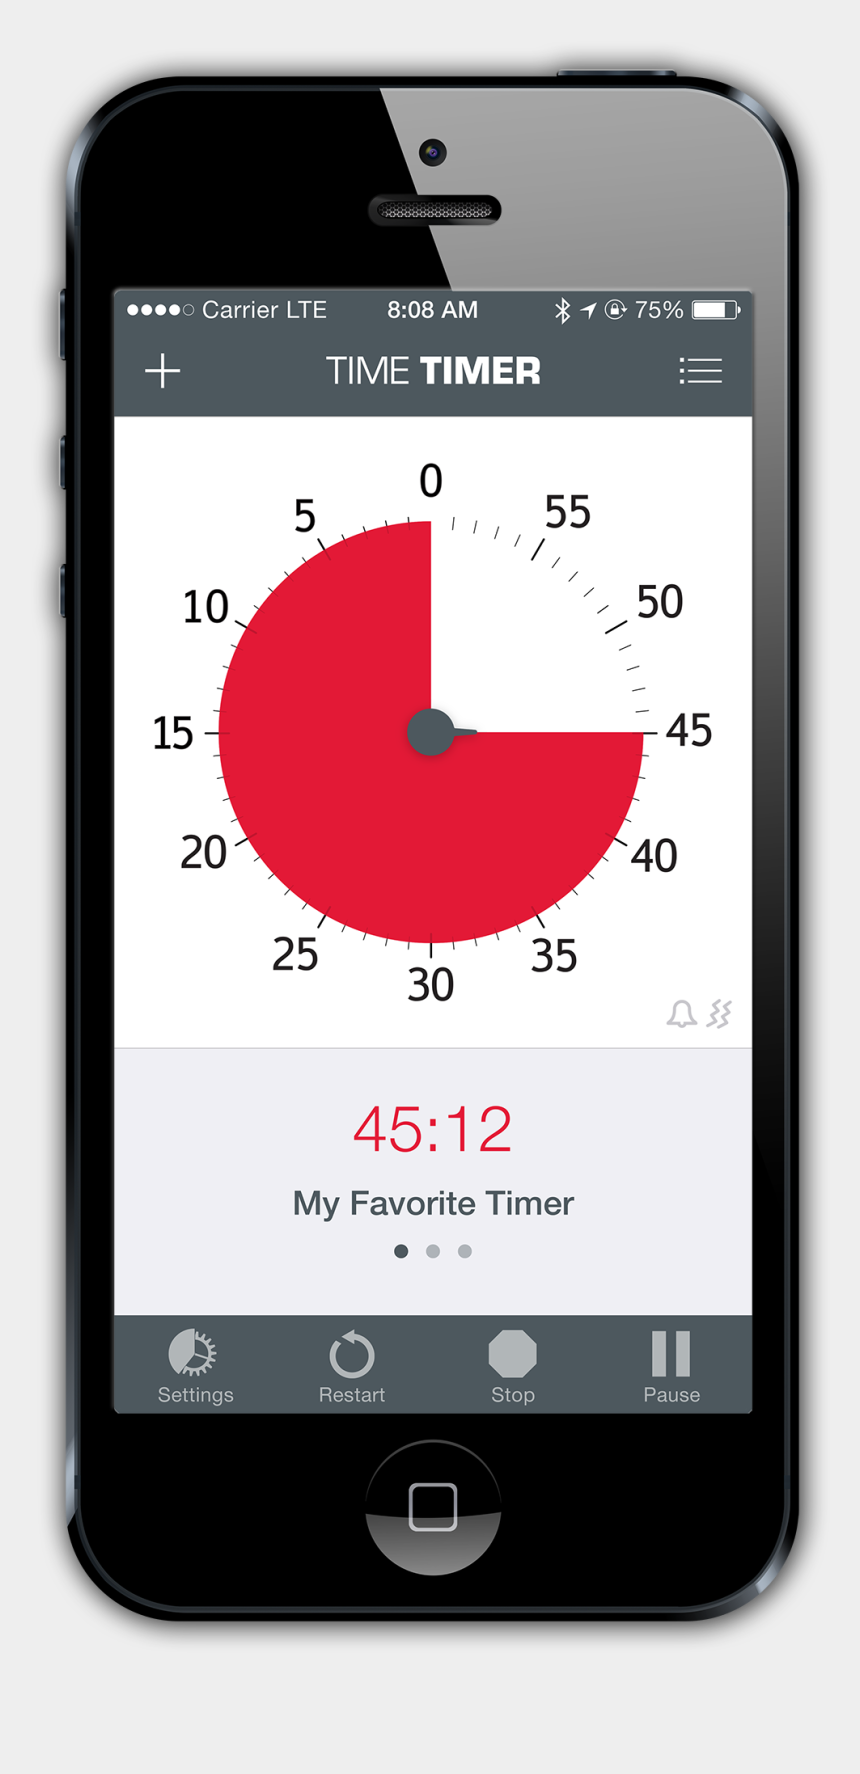 iphone app clipart, Cartoons - Iphone App Png 6 » Png Image - Time Timer App